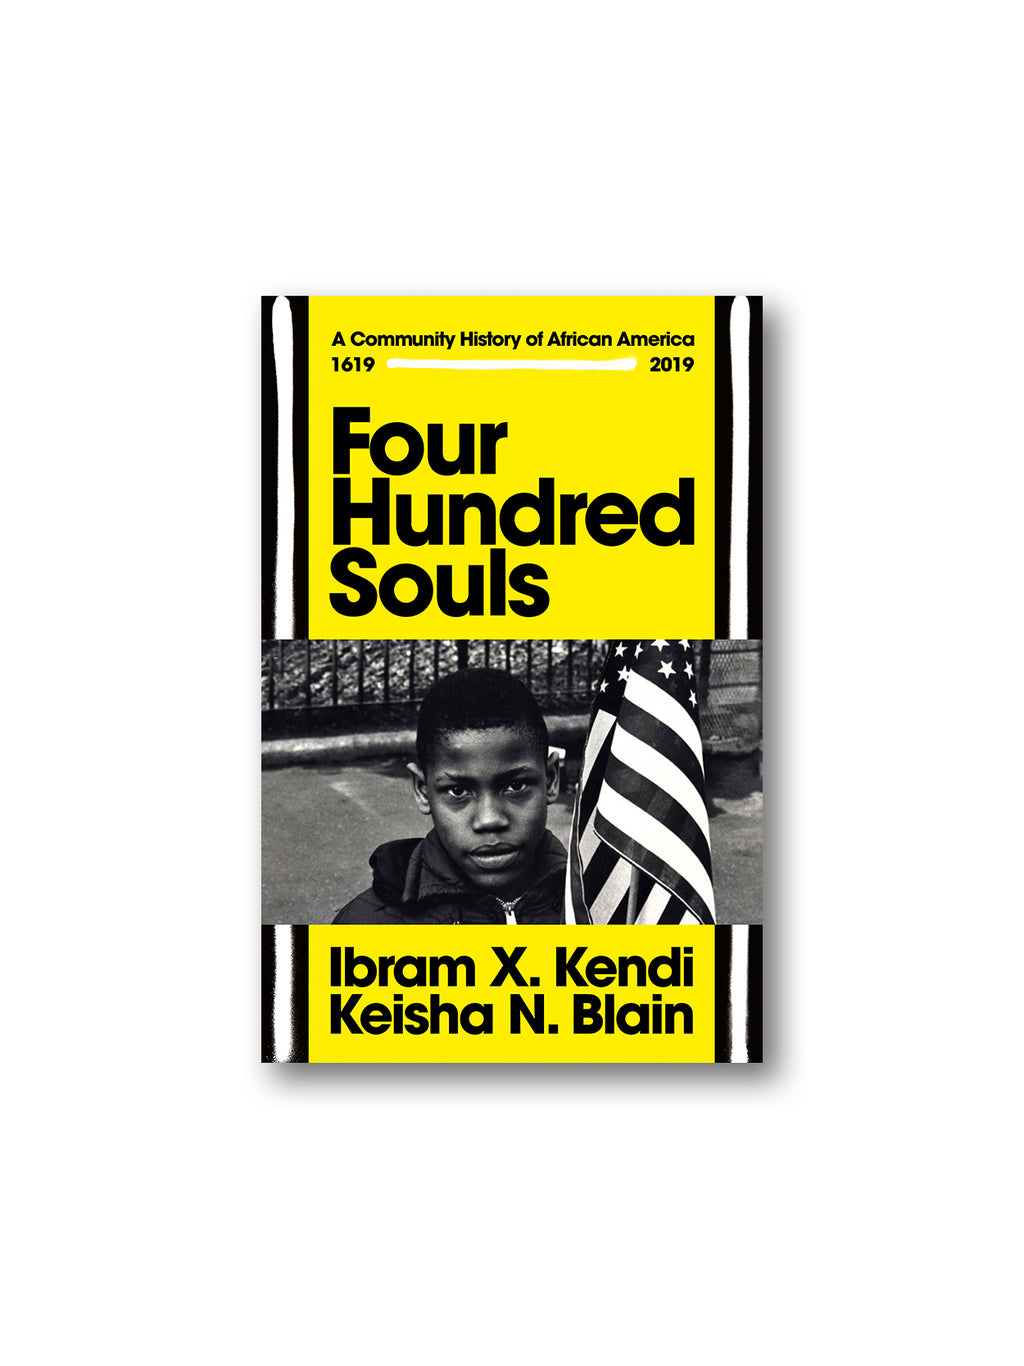 Four Hundred Souls : A Community History of African America 1619-2019